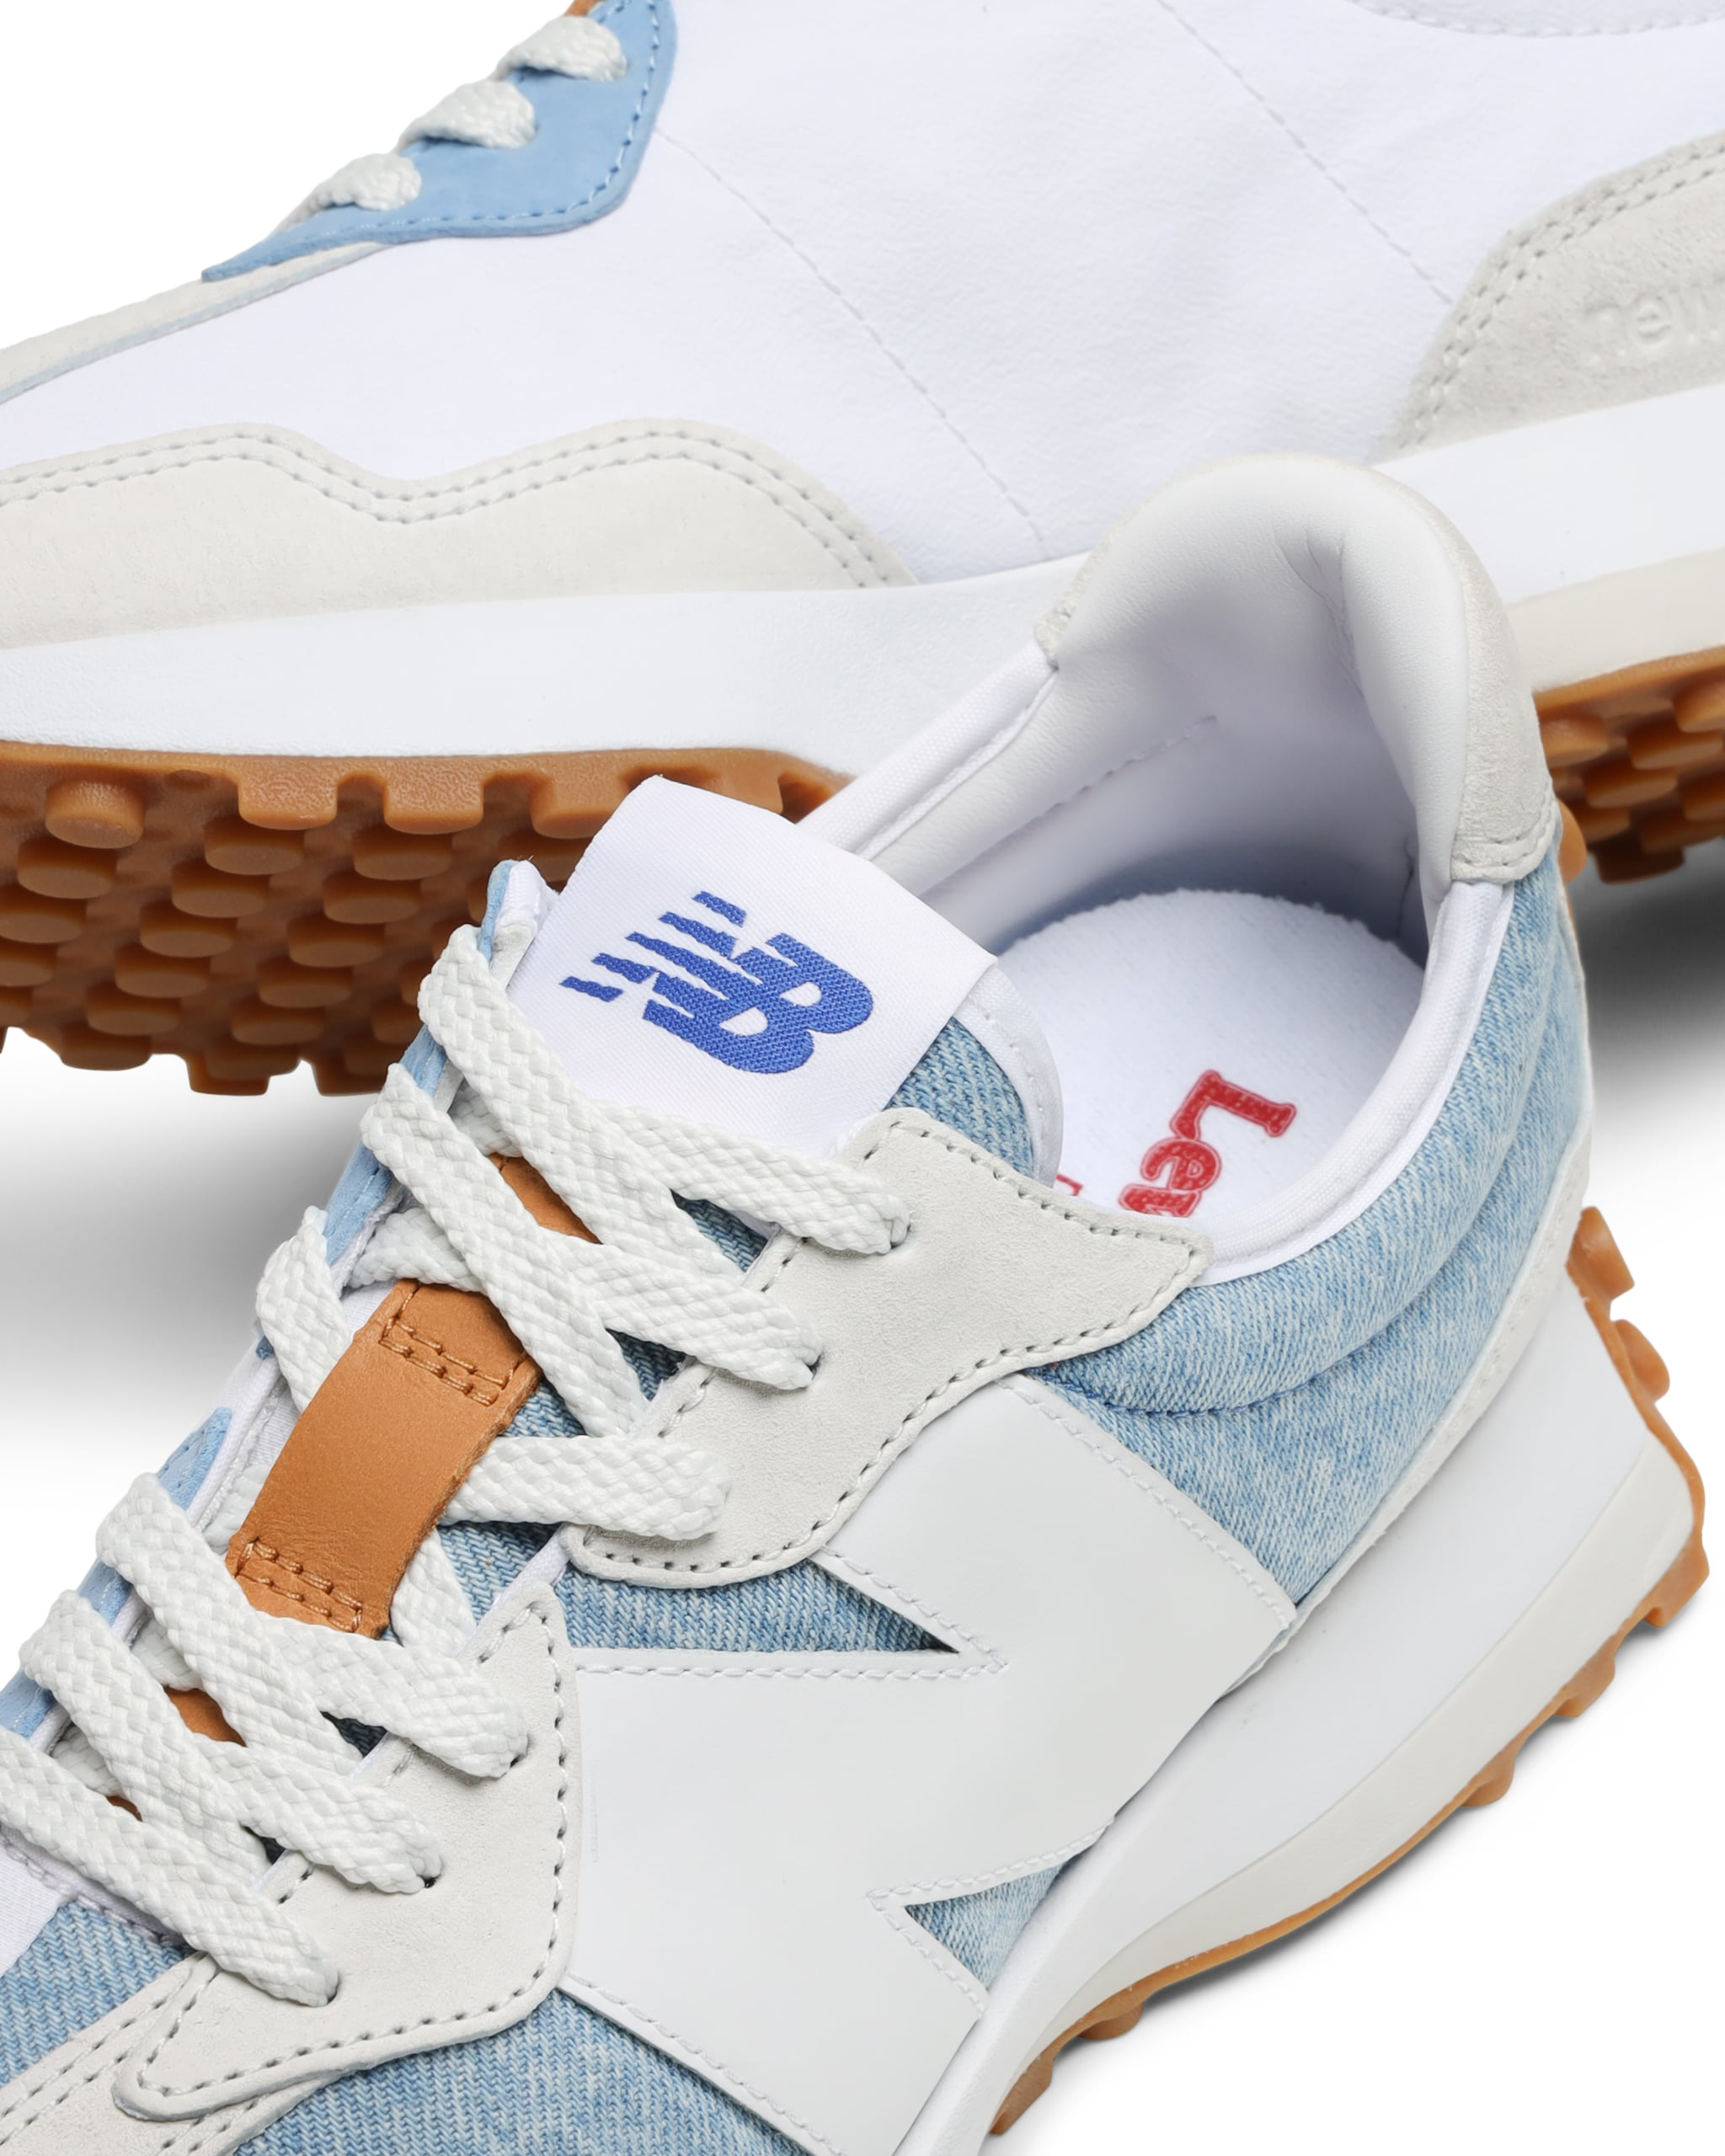 New Balance and Levi's Denim Sneakers